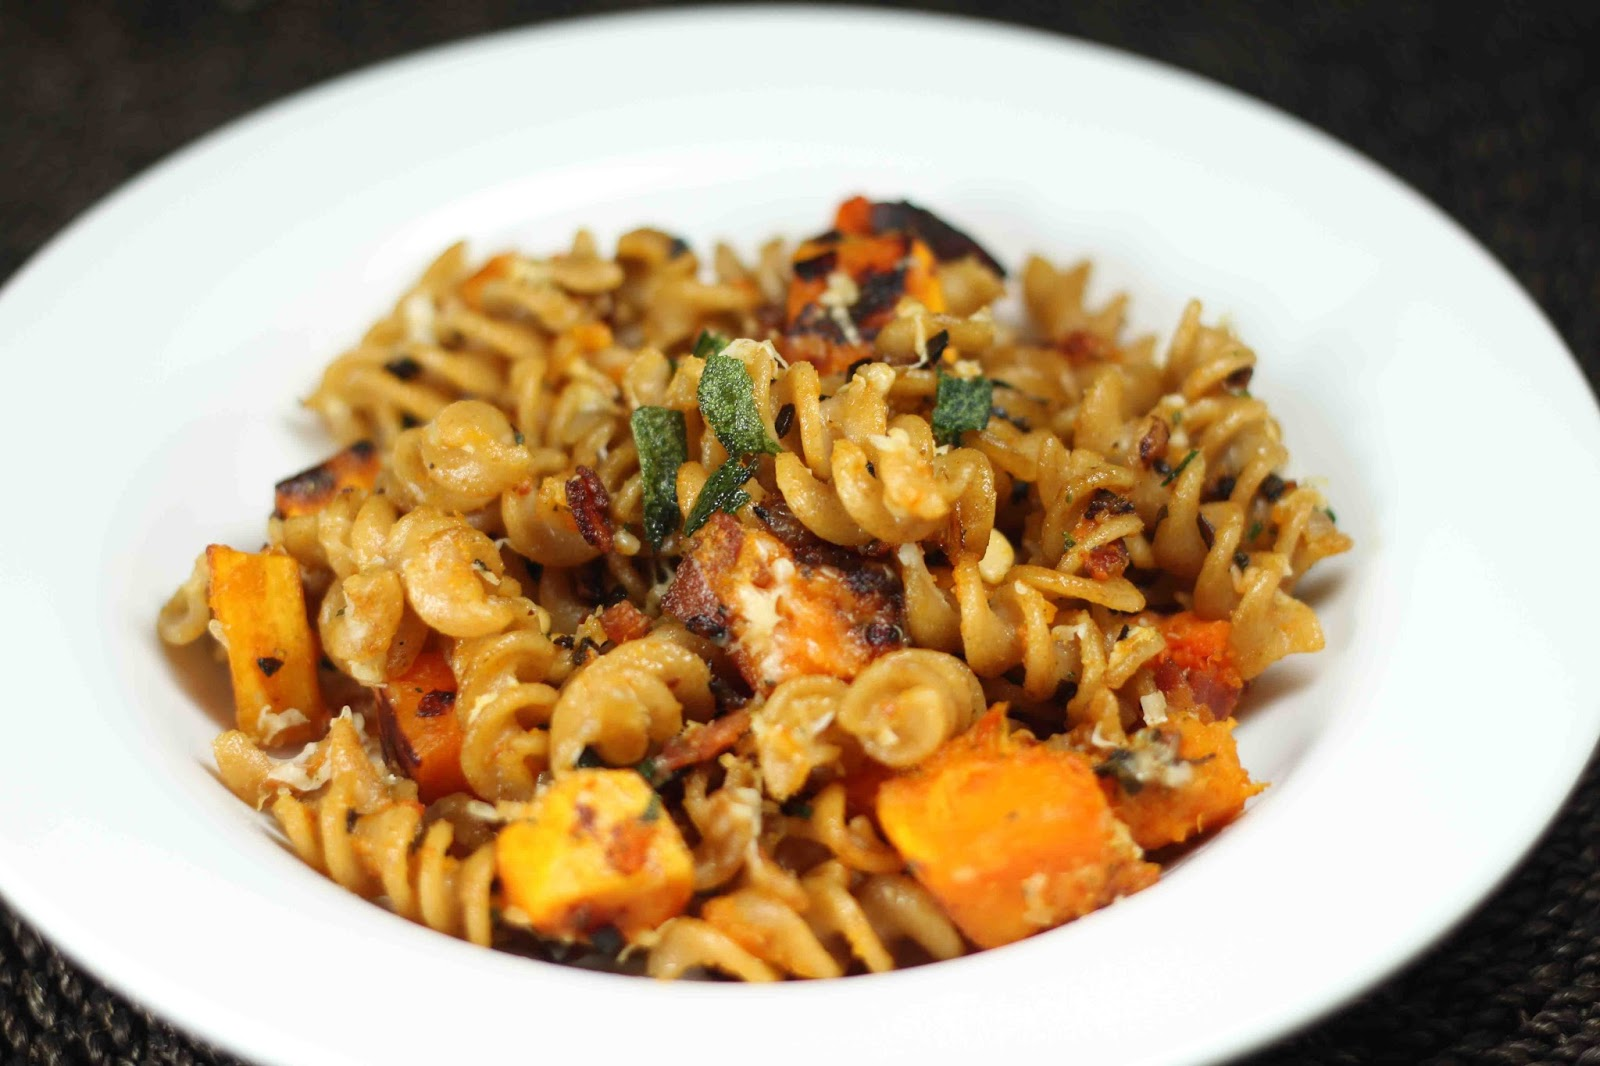 Healthy Dining on a Dime: Creamy Butternut Squash & Sage Pasta